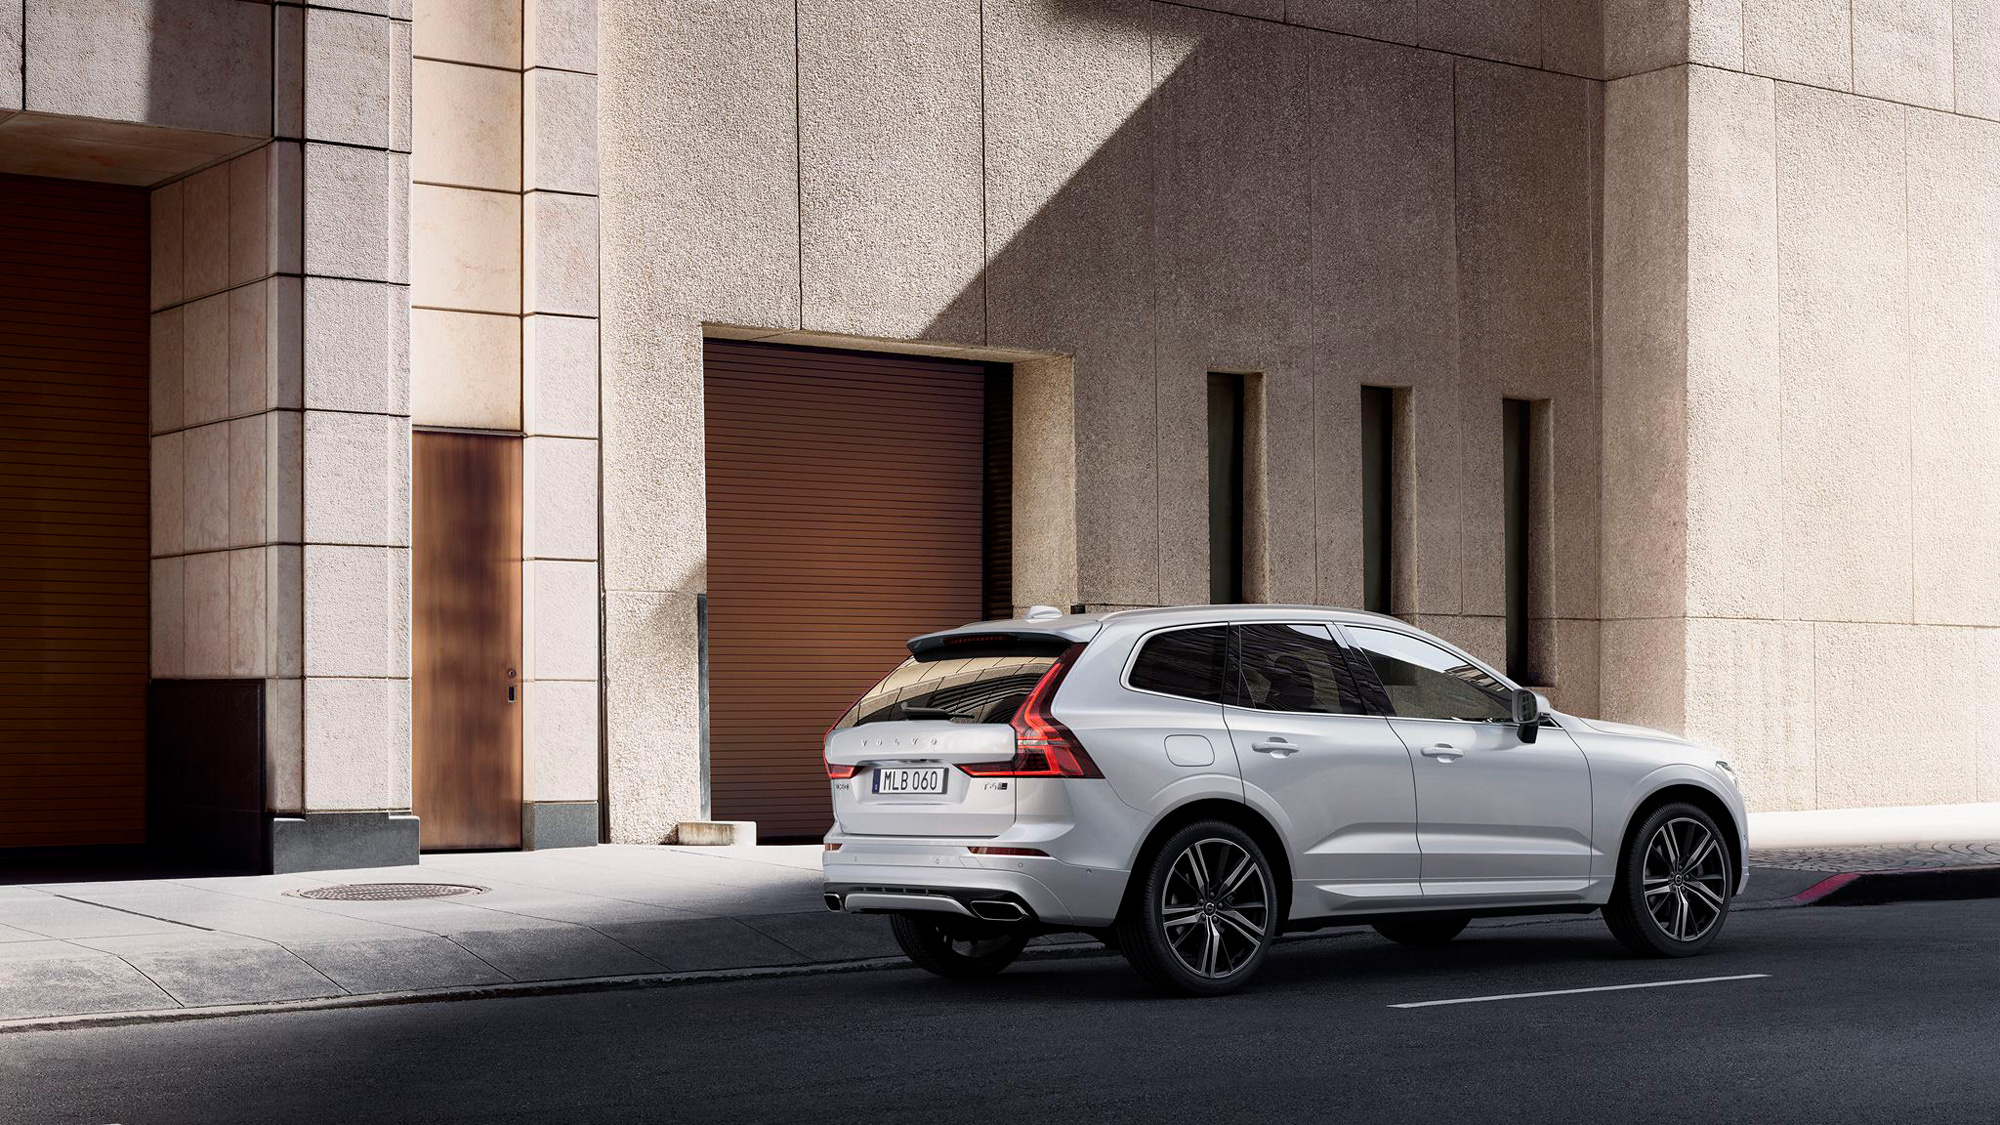 VOL-dealerwebsite-MY19-XC60-image03